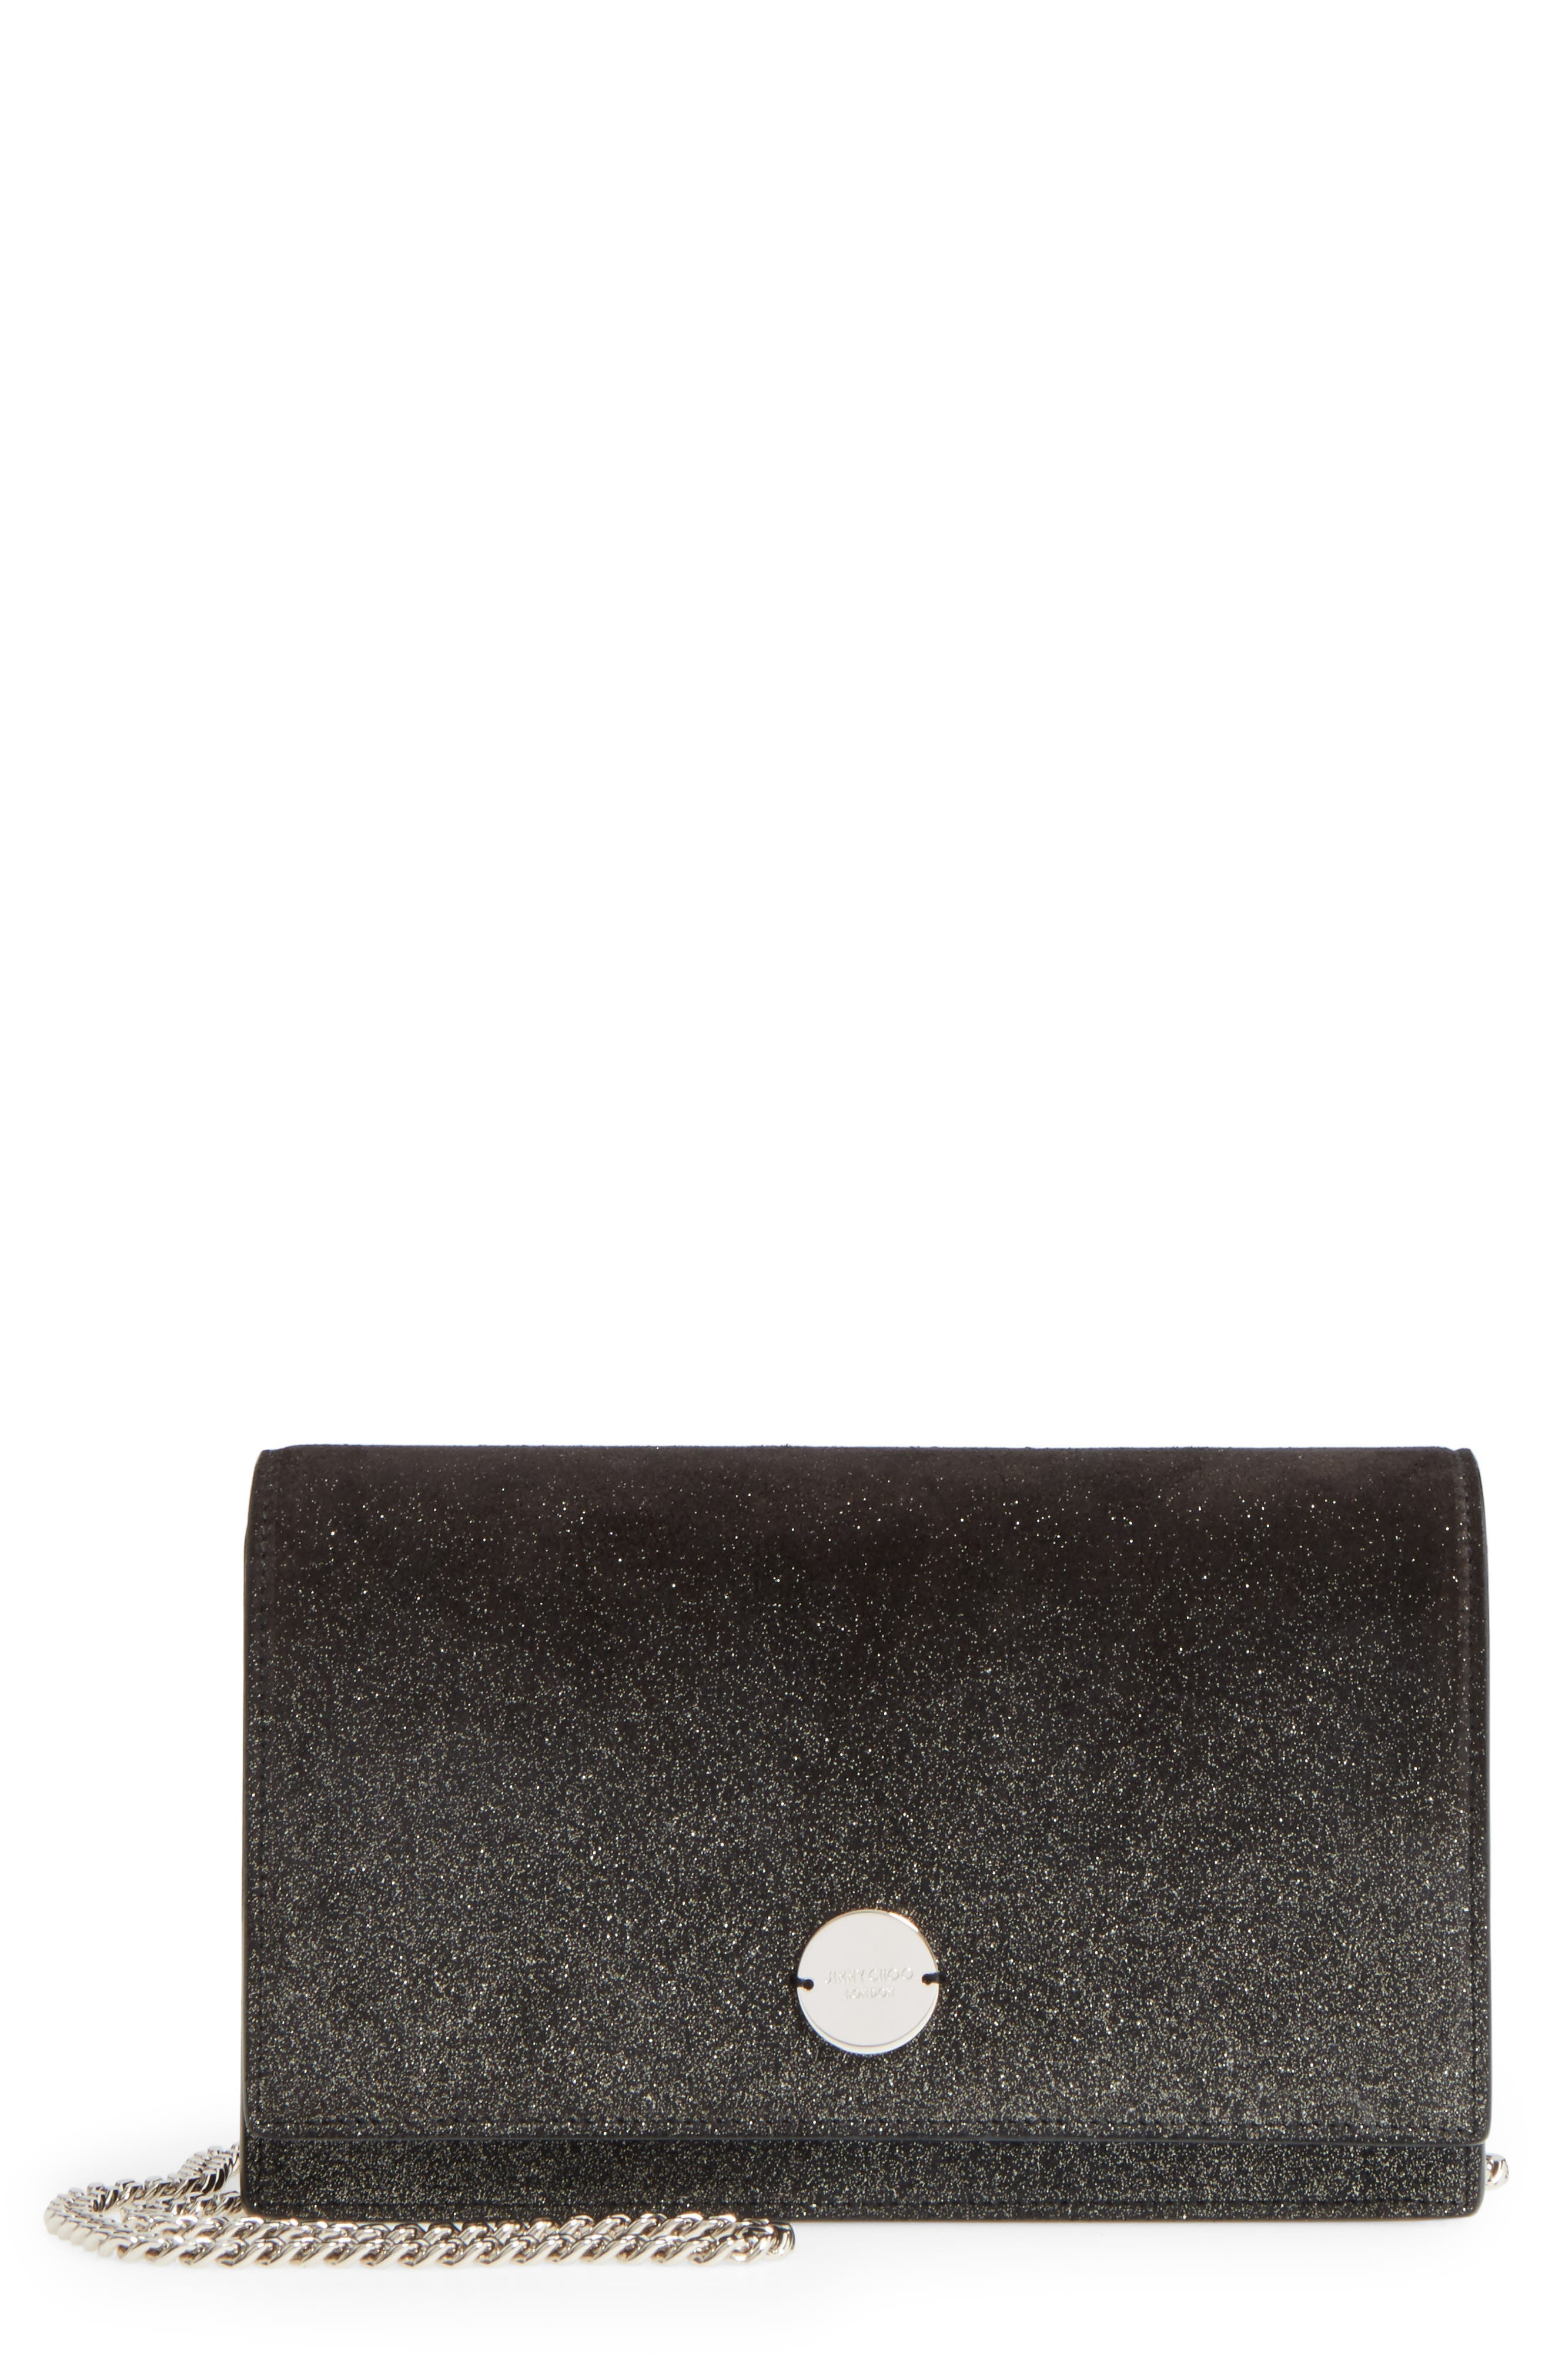 Main Image - Jimmy Choo Florence Ombré Glitter Suede Clutch